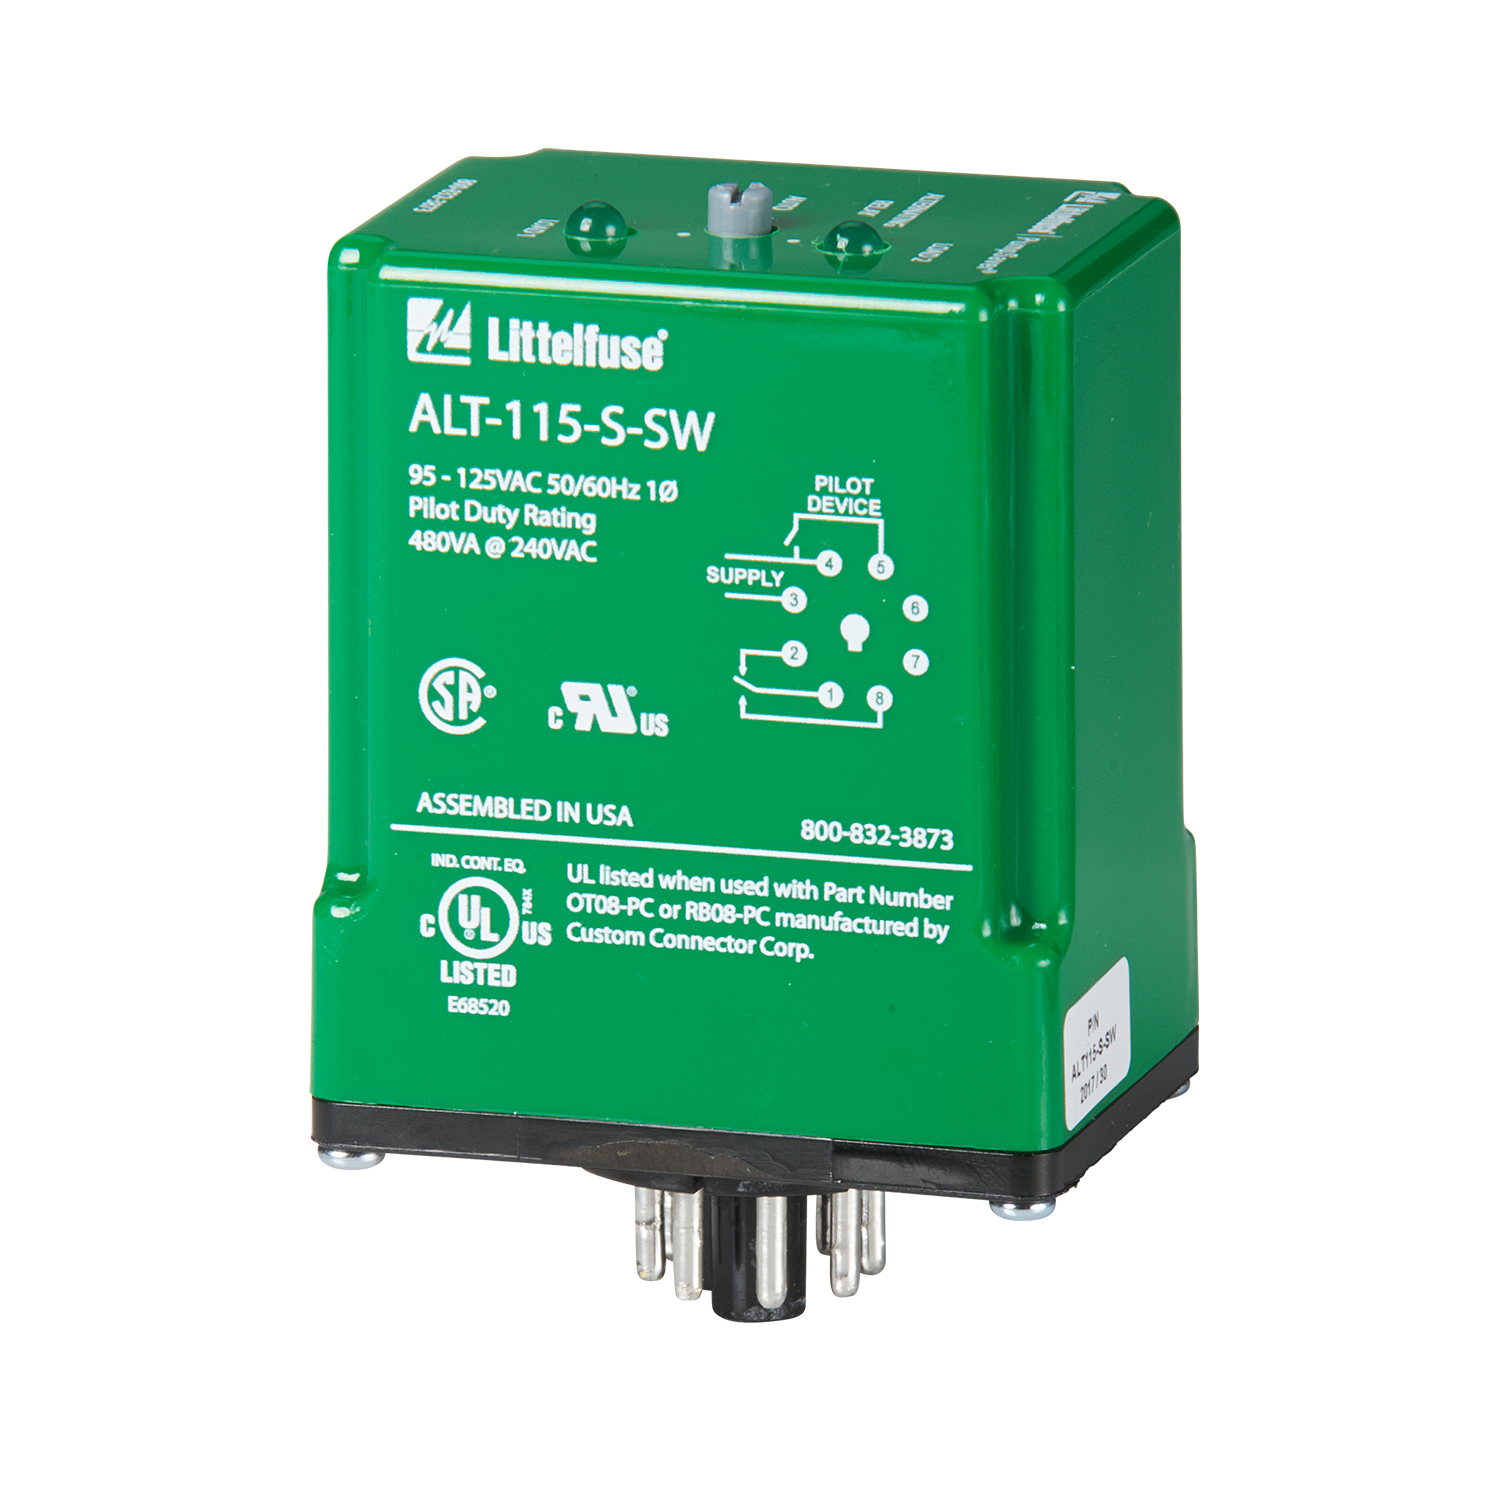 http://www.littelfuse.com/~/media/images/products/protection-relays/pump-controls-liquid-level-controls/littelfuse_protectionrelays_alt_series.jpg